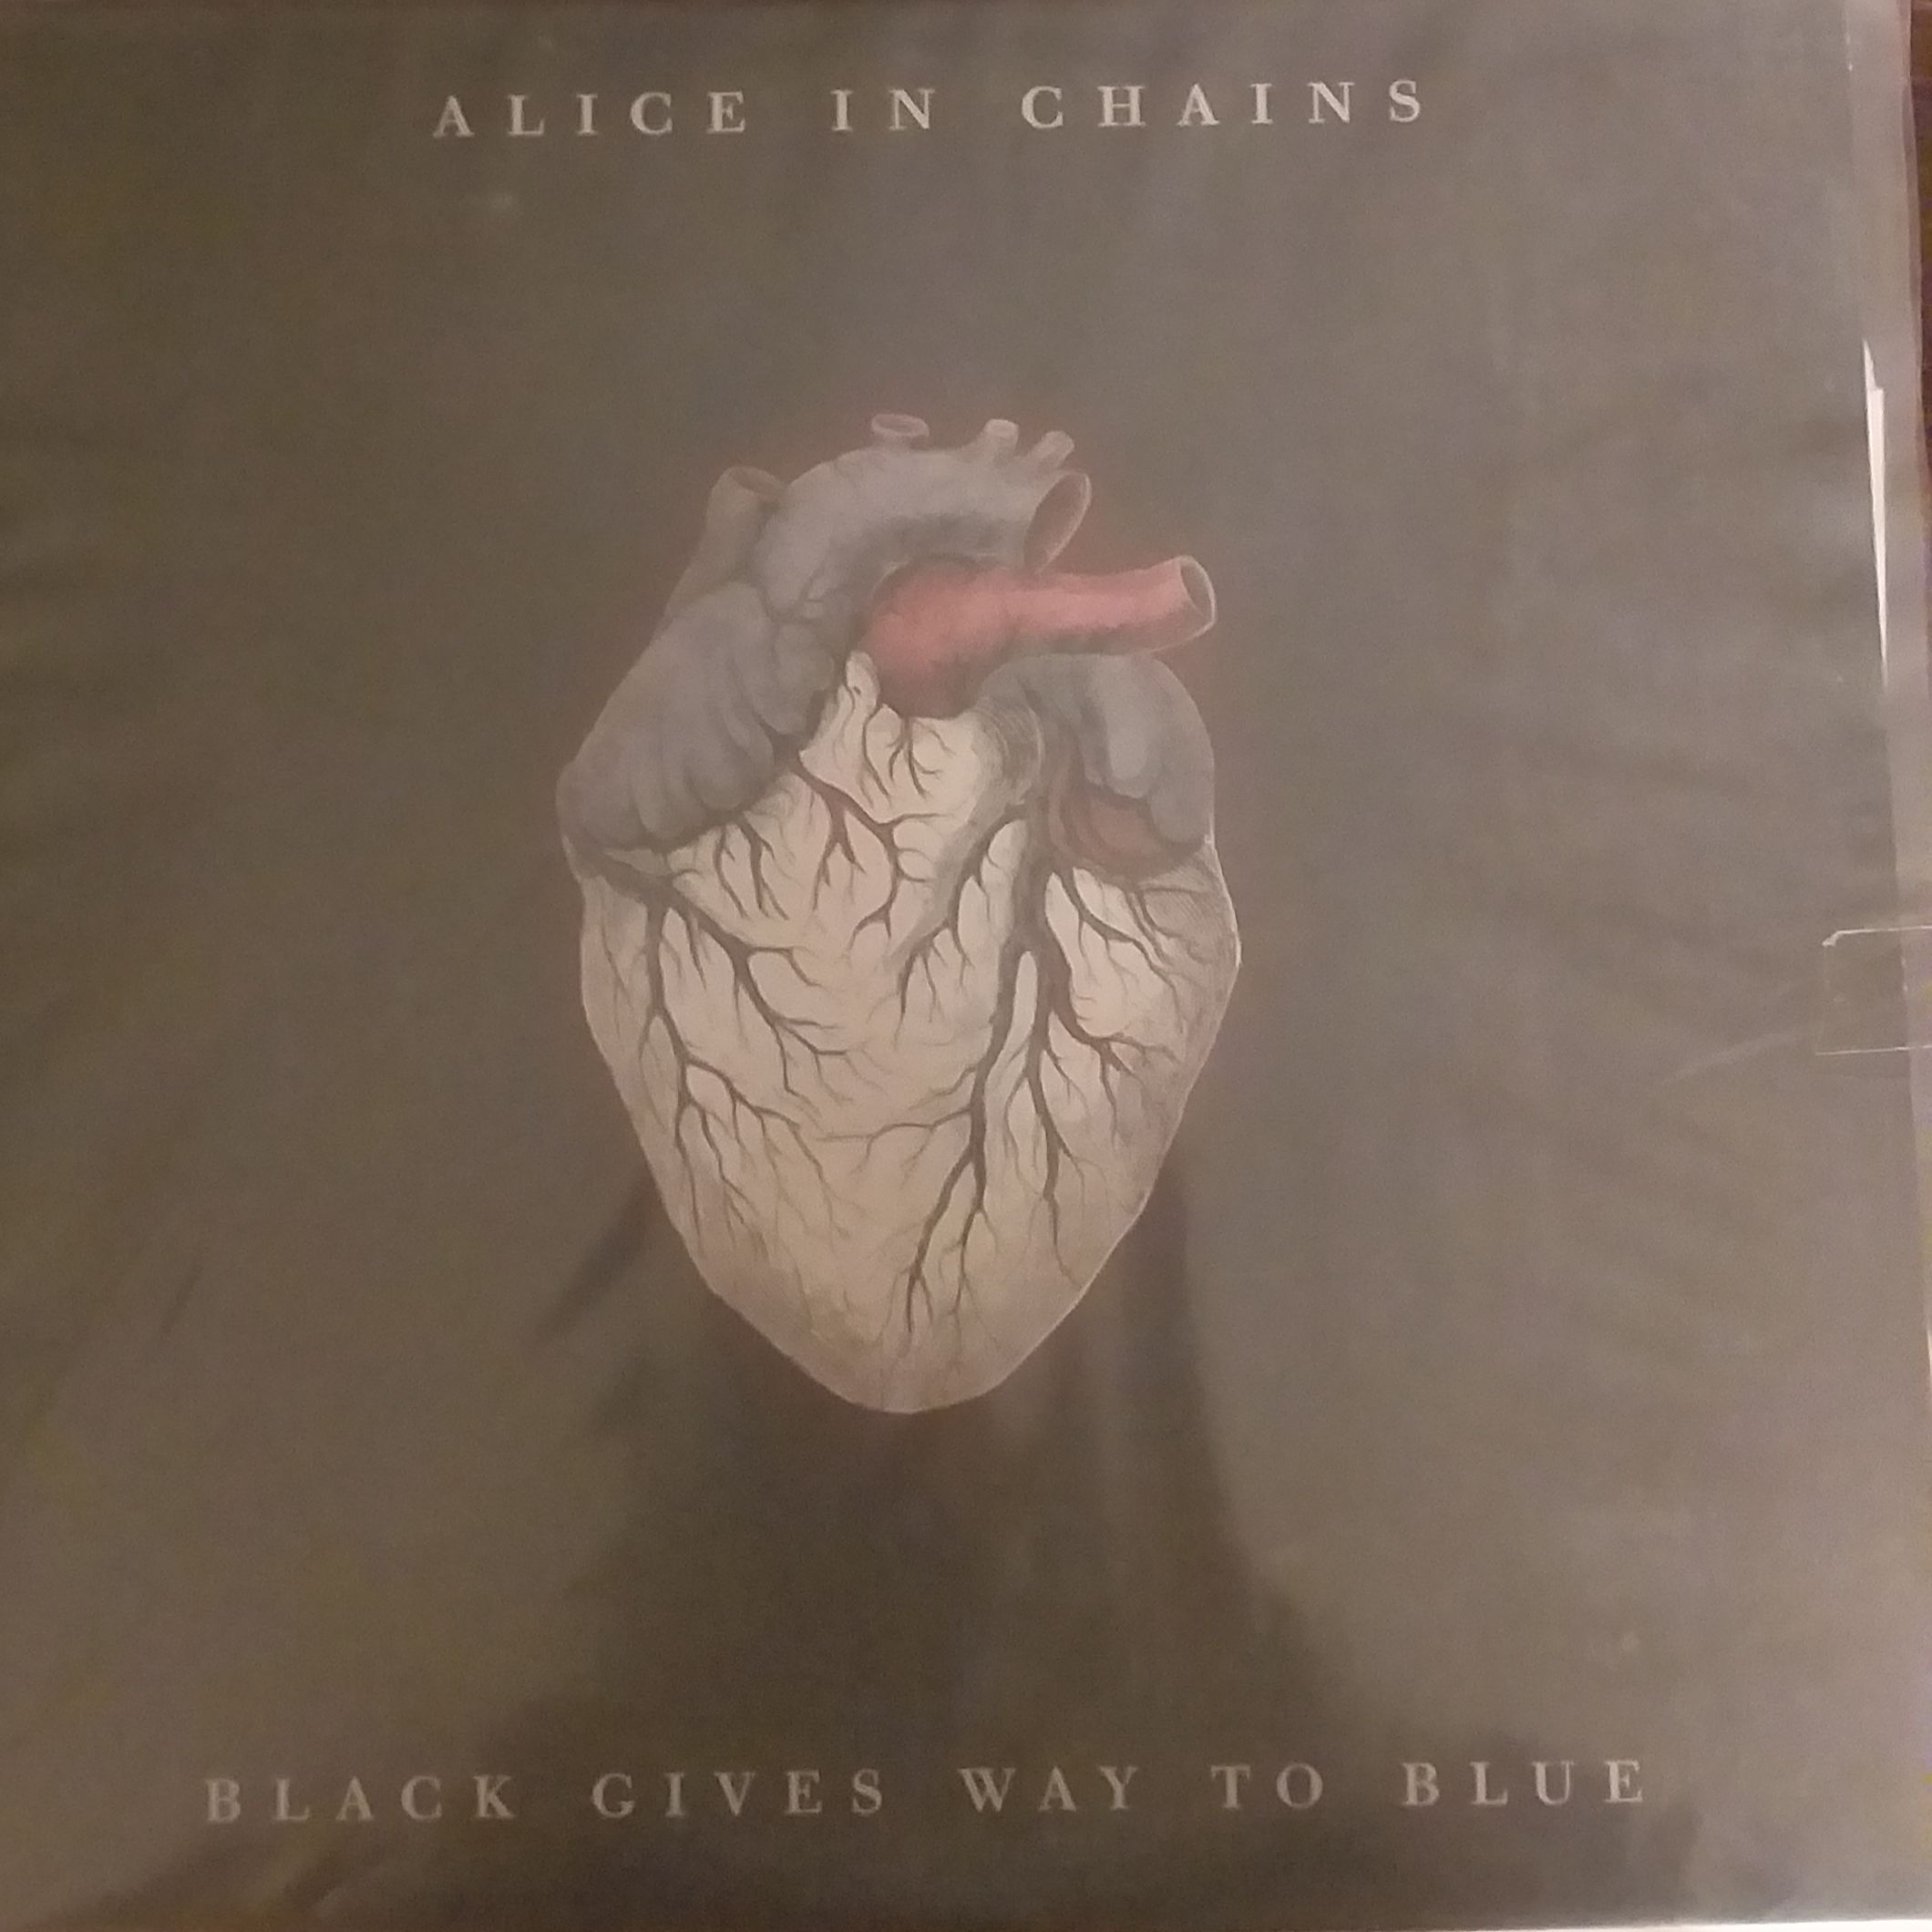 Alice in chains Black gives way to blue LP undefined